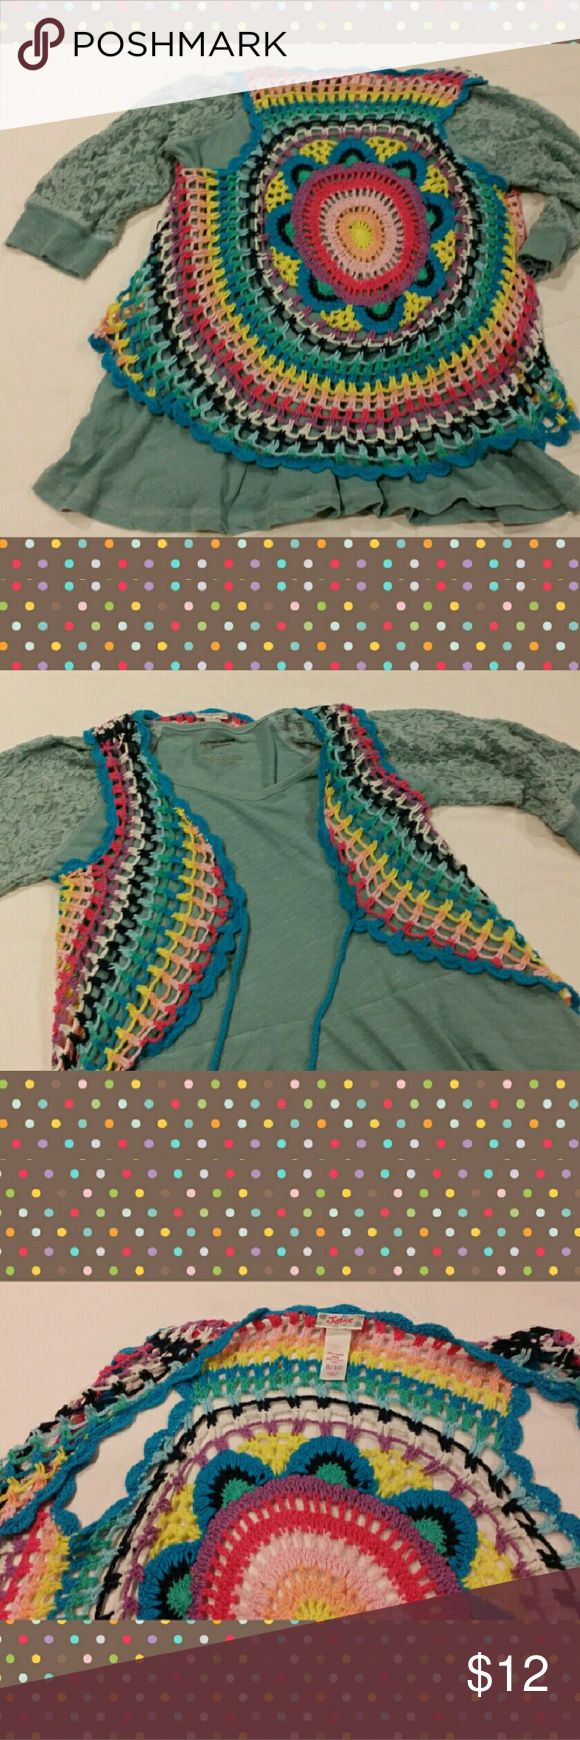 CUTE MULTICOLOR JUSTICE CROCHET VEST Love this adorable crochet piece for a fashionable gal! It's so versatile, it can be worked into her wardrobe all year long. Ties in front, or leave open. Loose n comfy! Justice  Shirts & Tops Sweaters